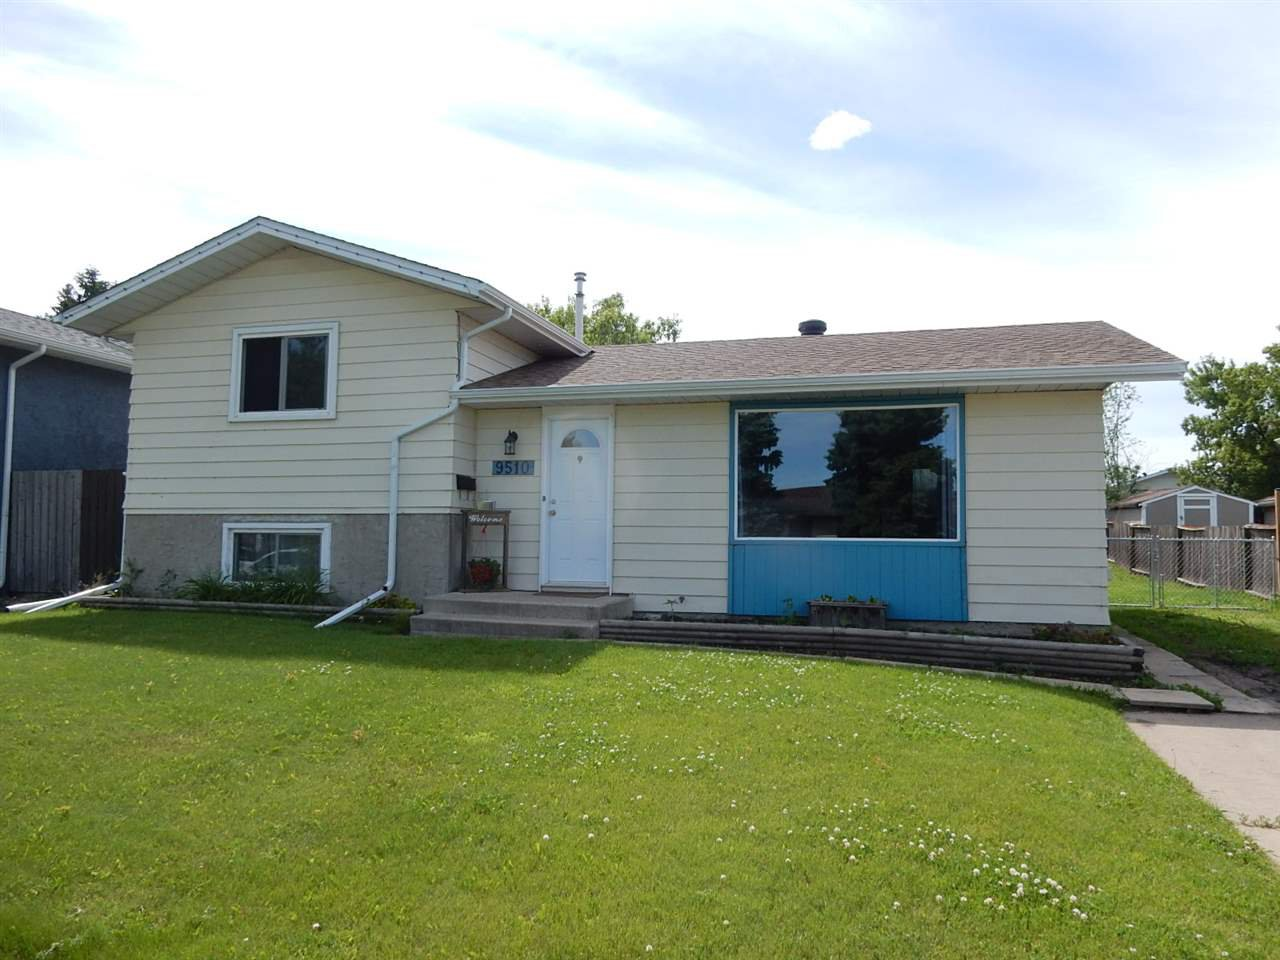 Main Photo: 9510 97 Street: Morinville House for sale : MLS®# E4207026